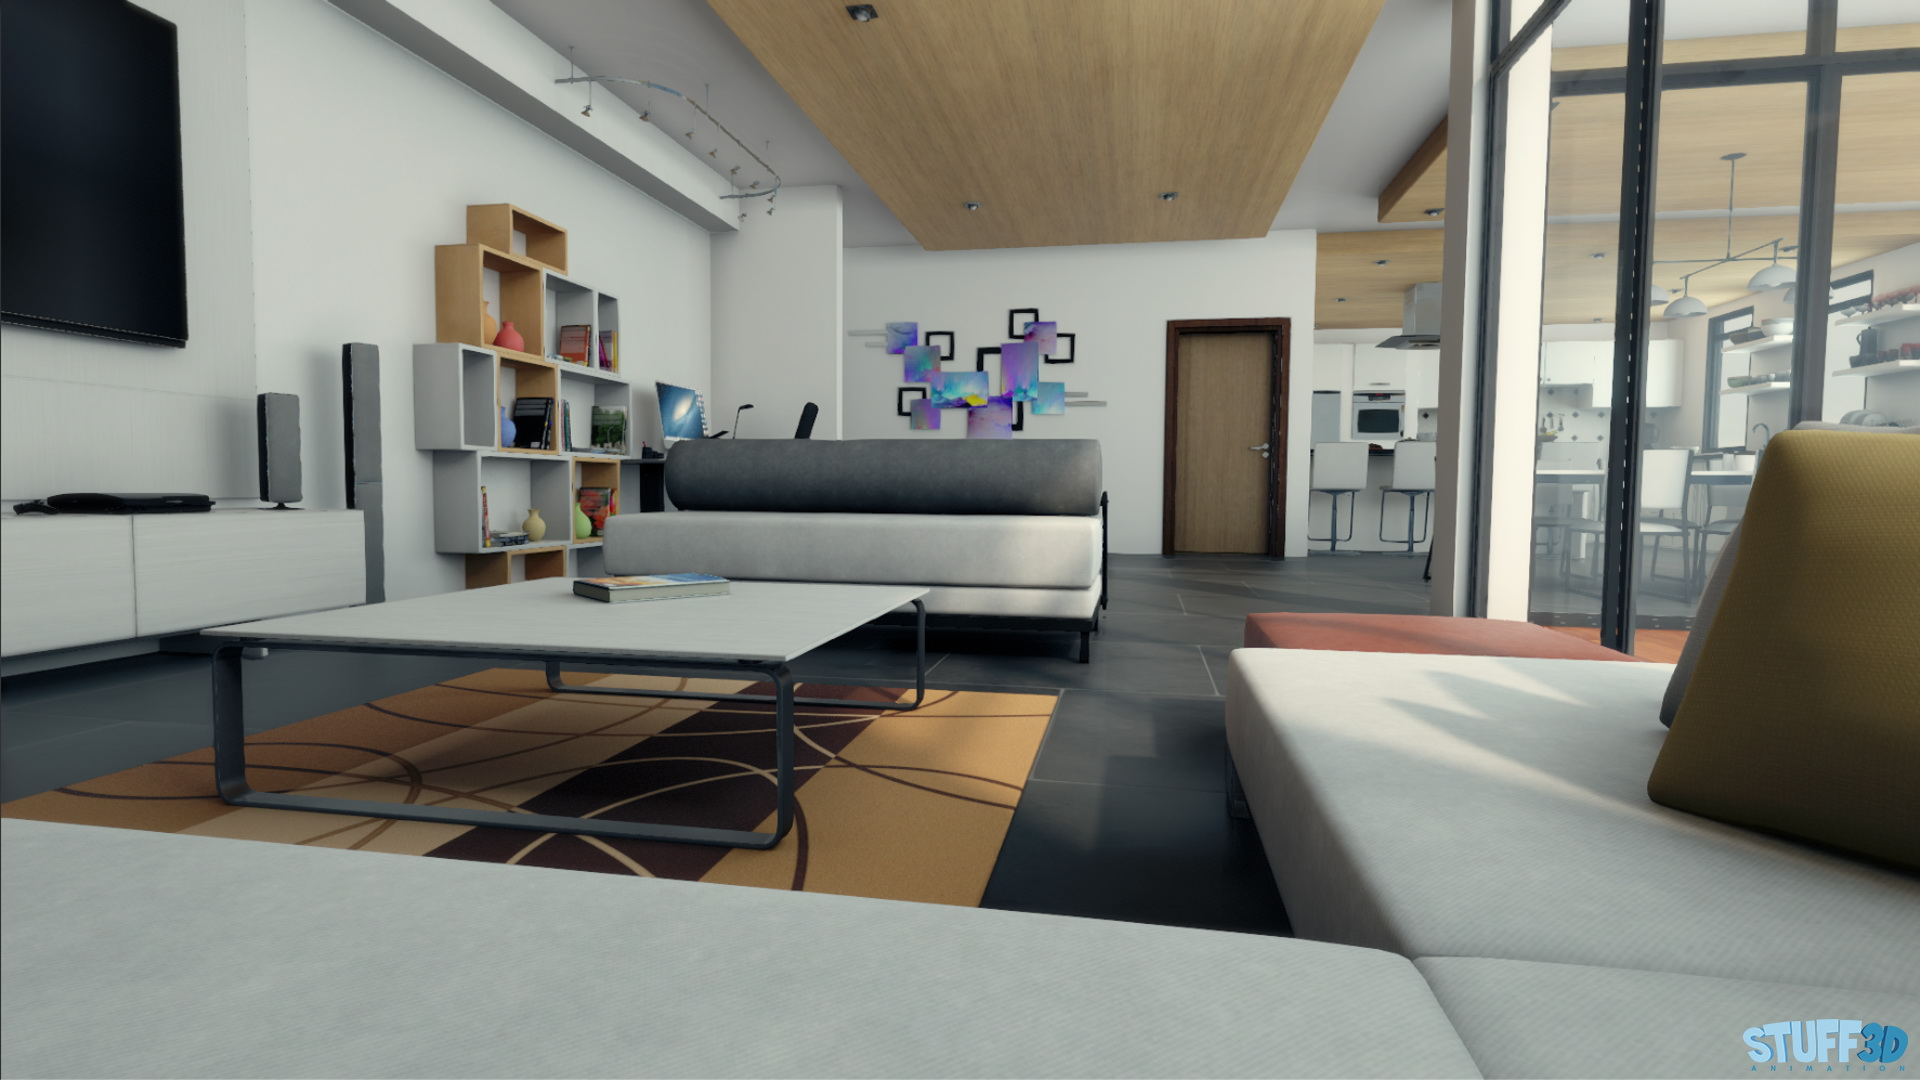 Apartamento – Real Time Unity3D – 02